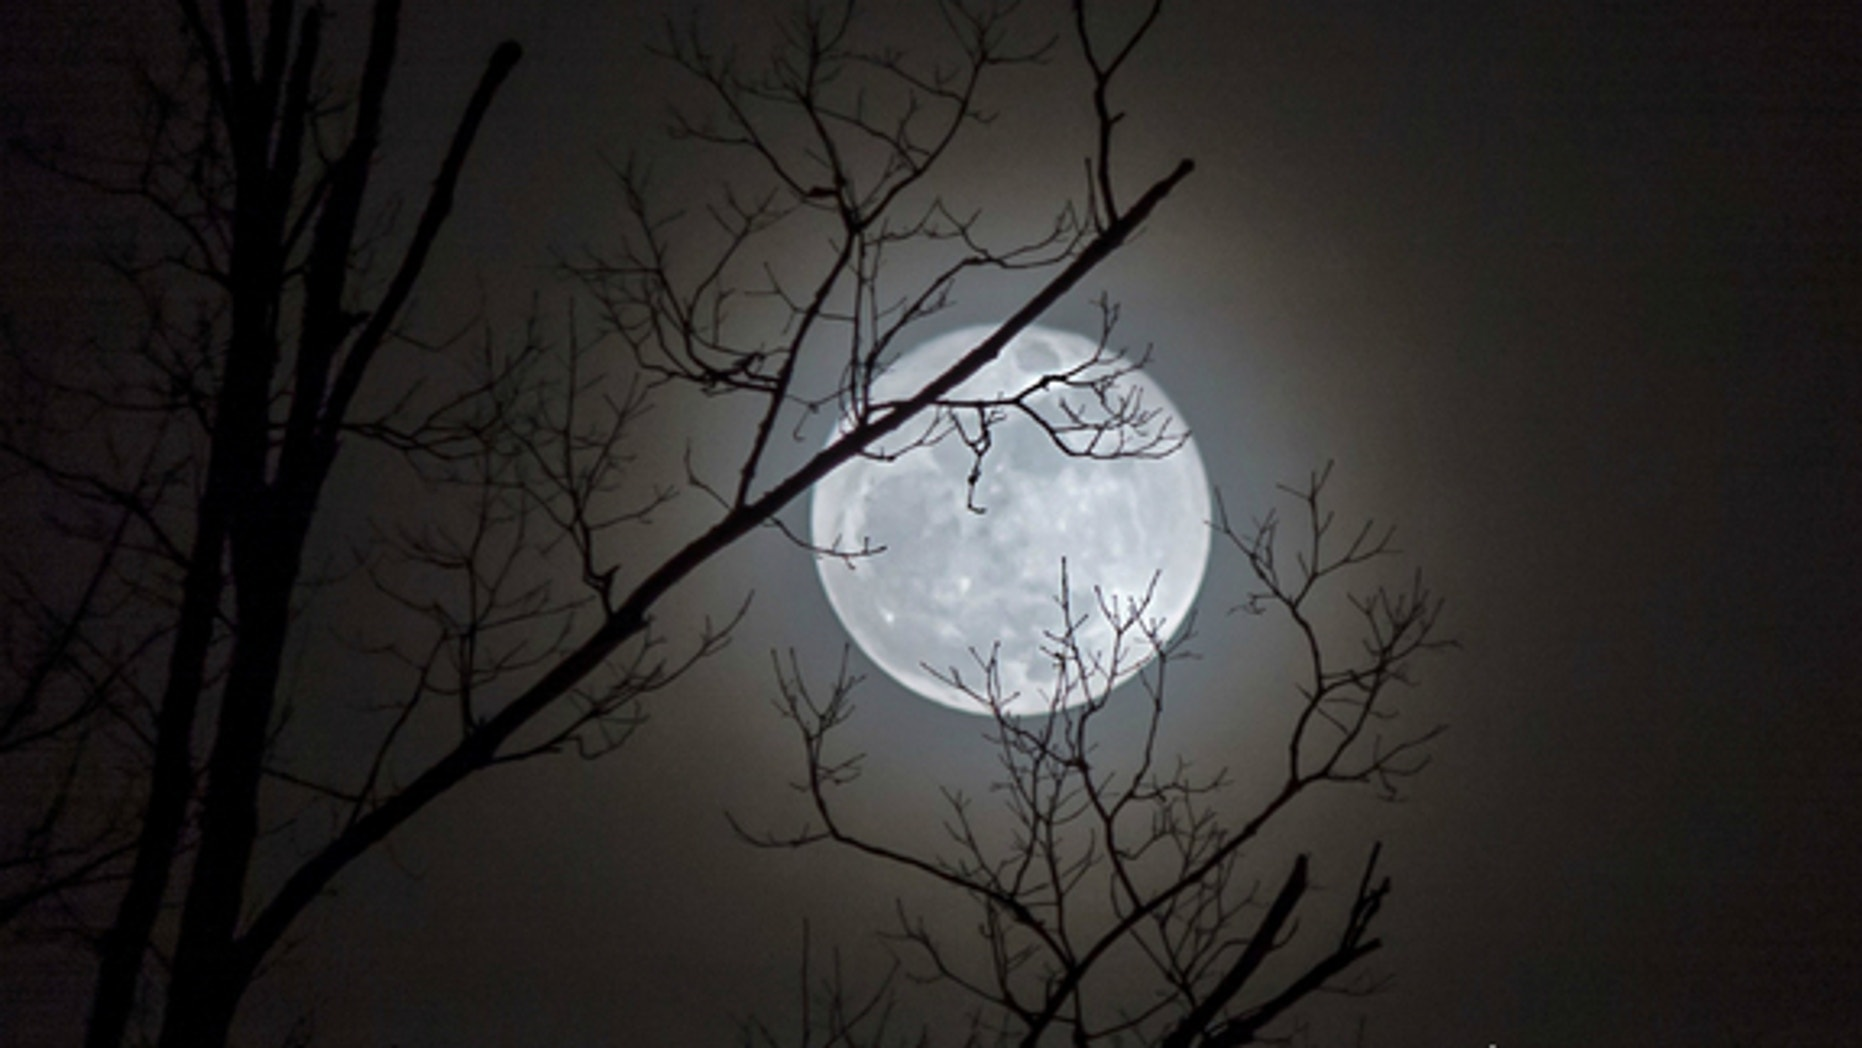 The full moon, captured by astrophotographer Jennifer Rose Lane on Jan. 5, 2015, in Chapmanville, West Virginia. Tonight (July 31) there will be a Blue Moon in the sky.